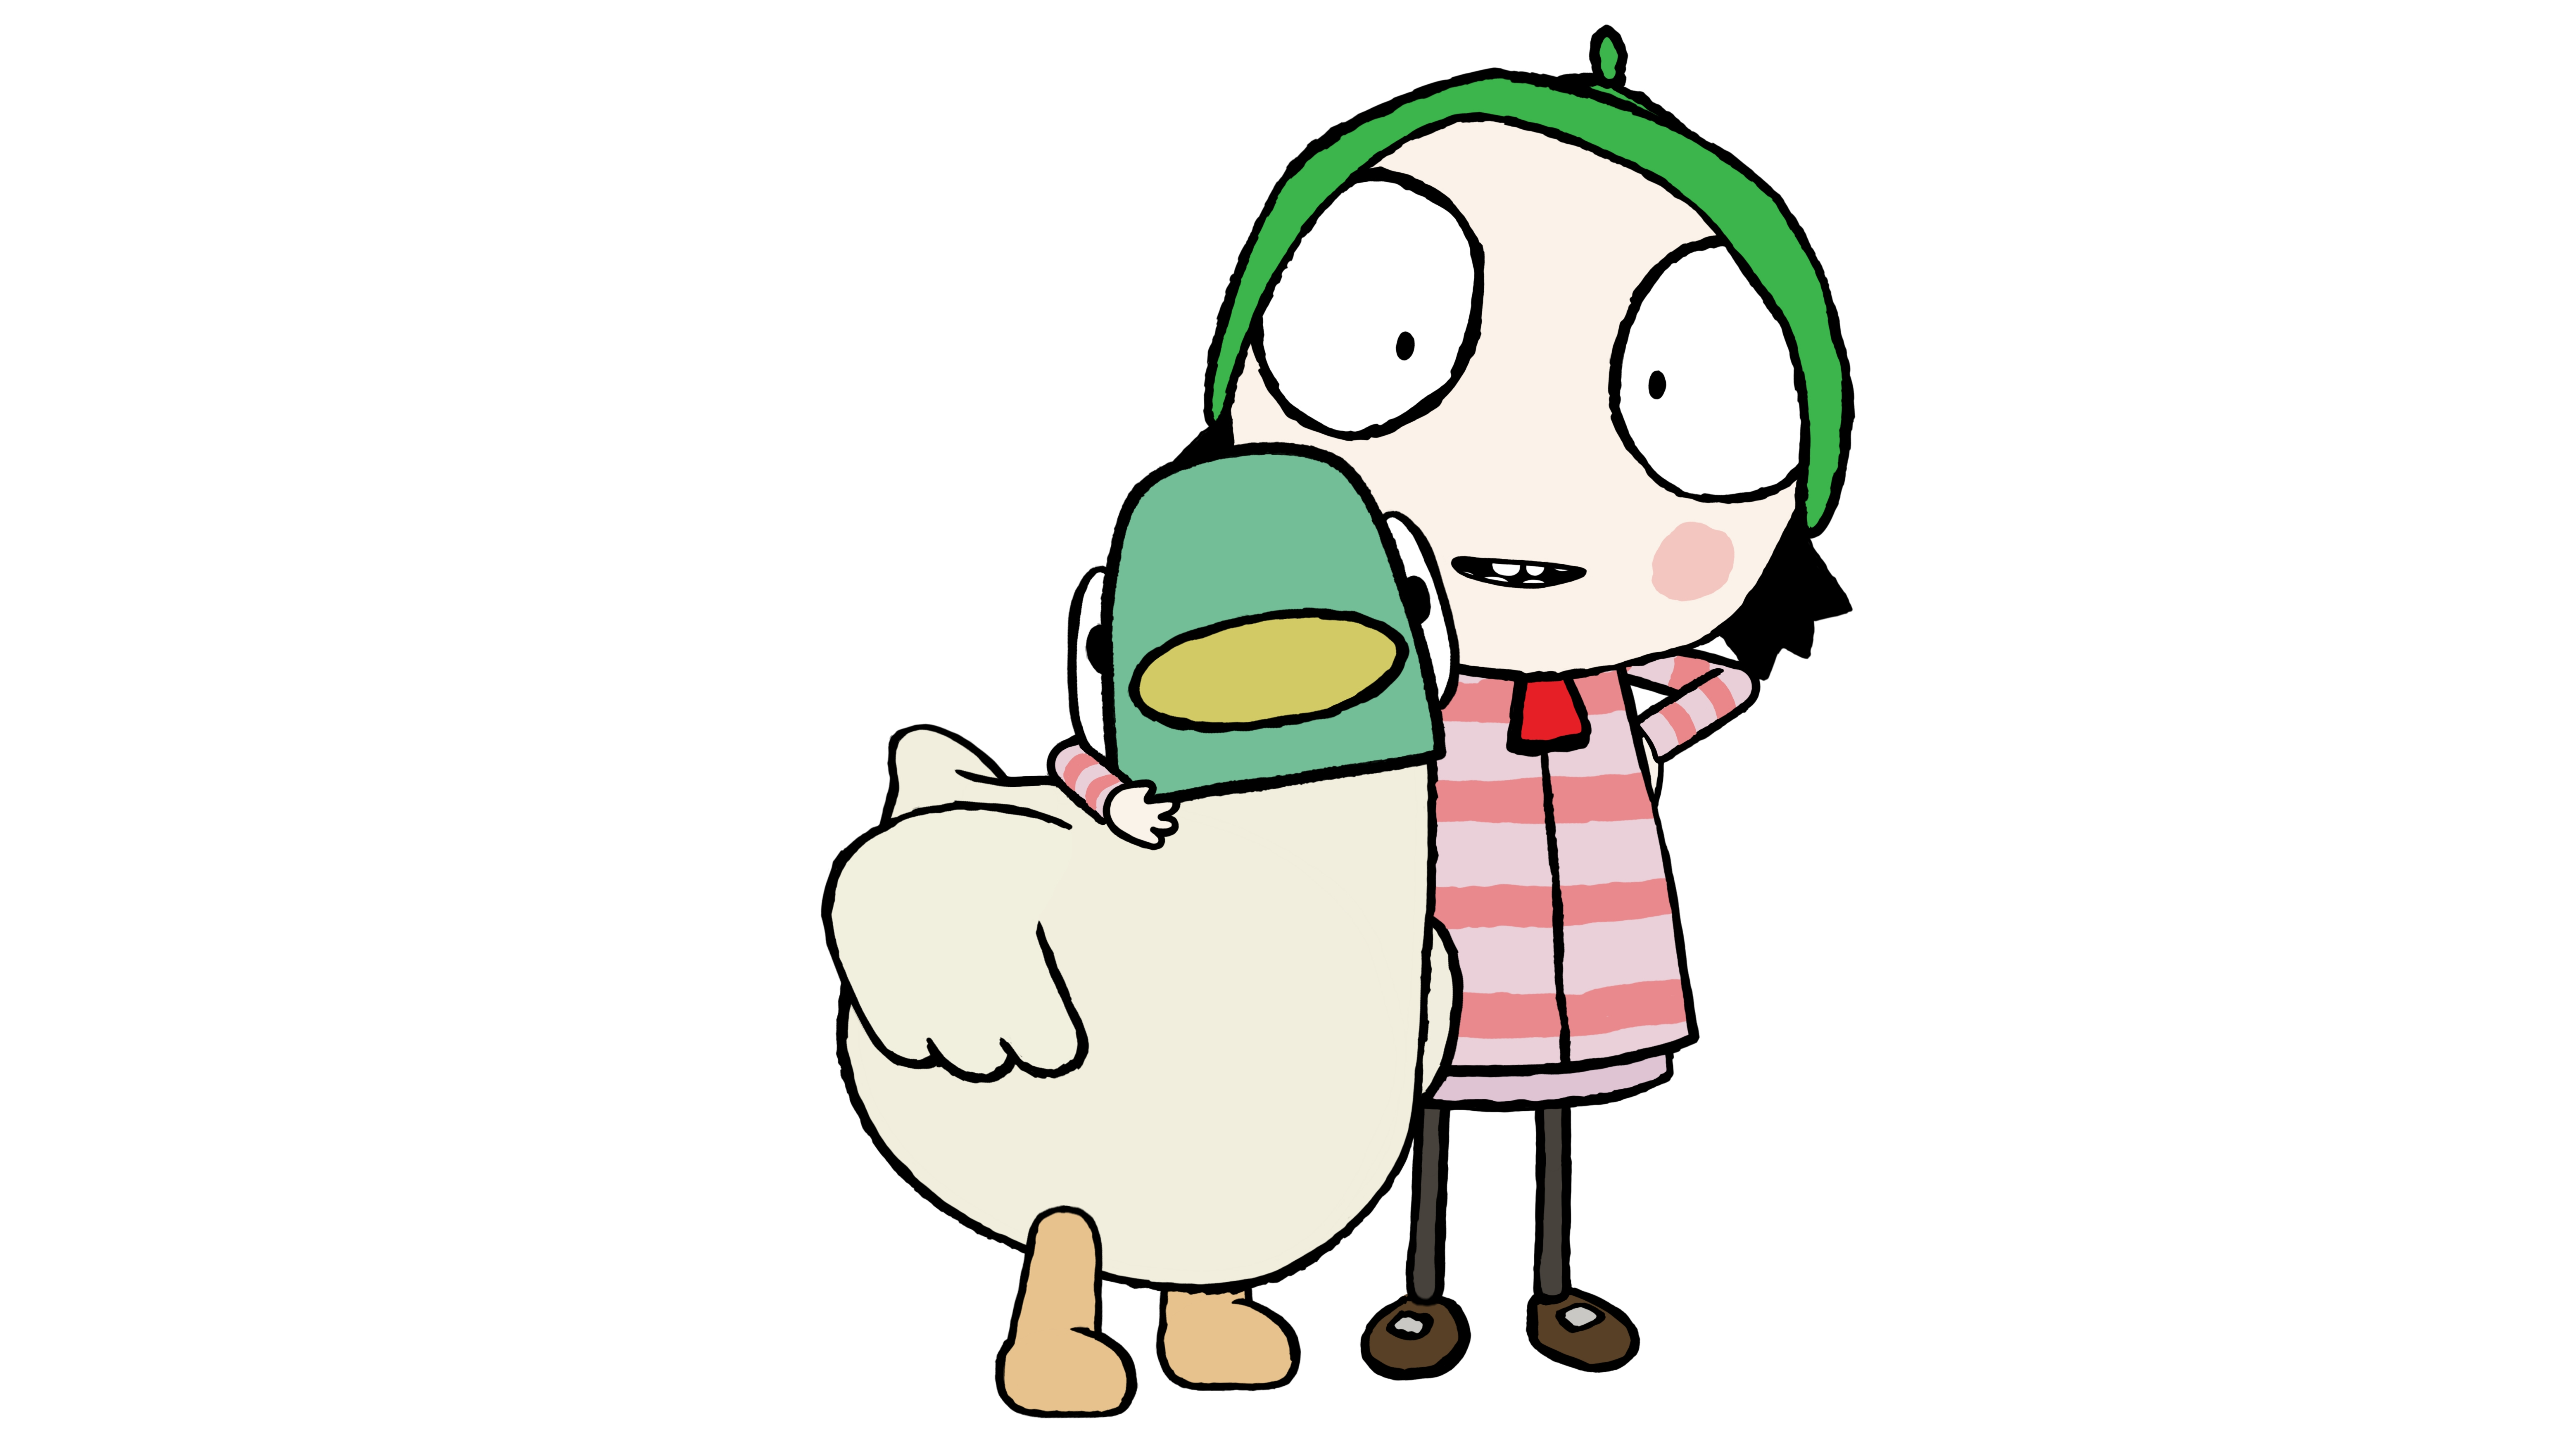 Sarah and Duck promotional image